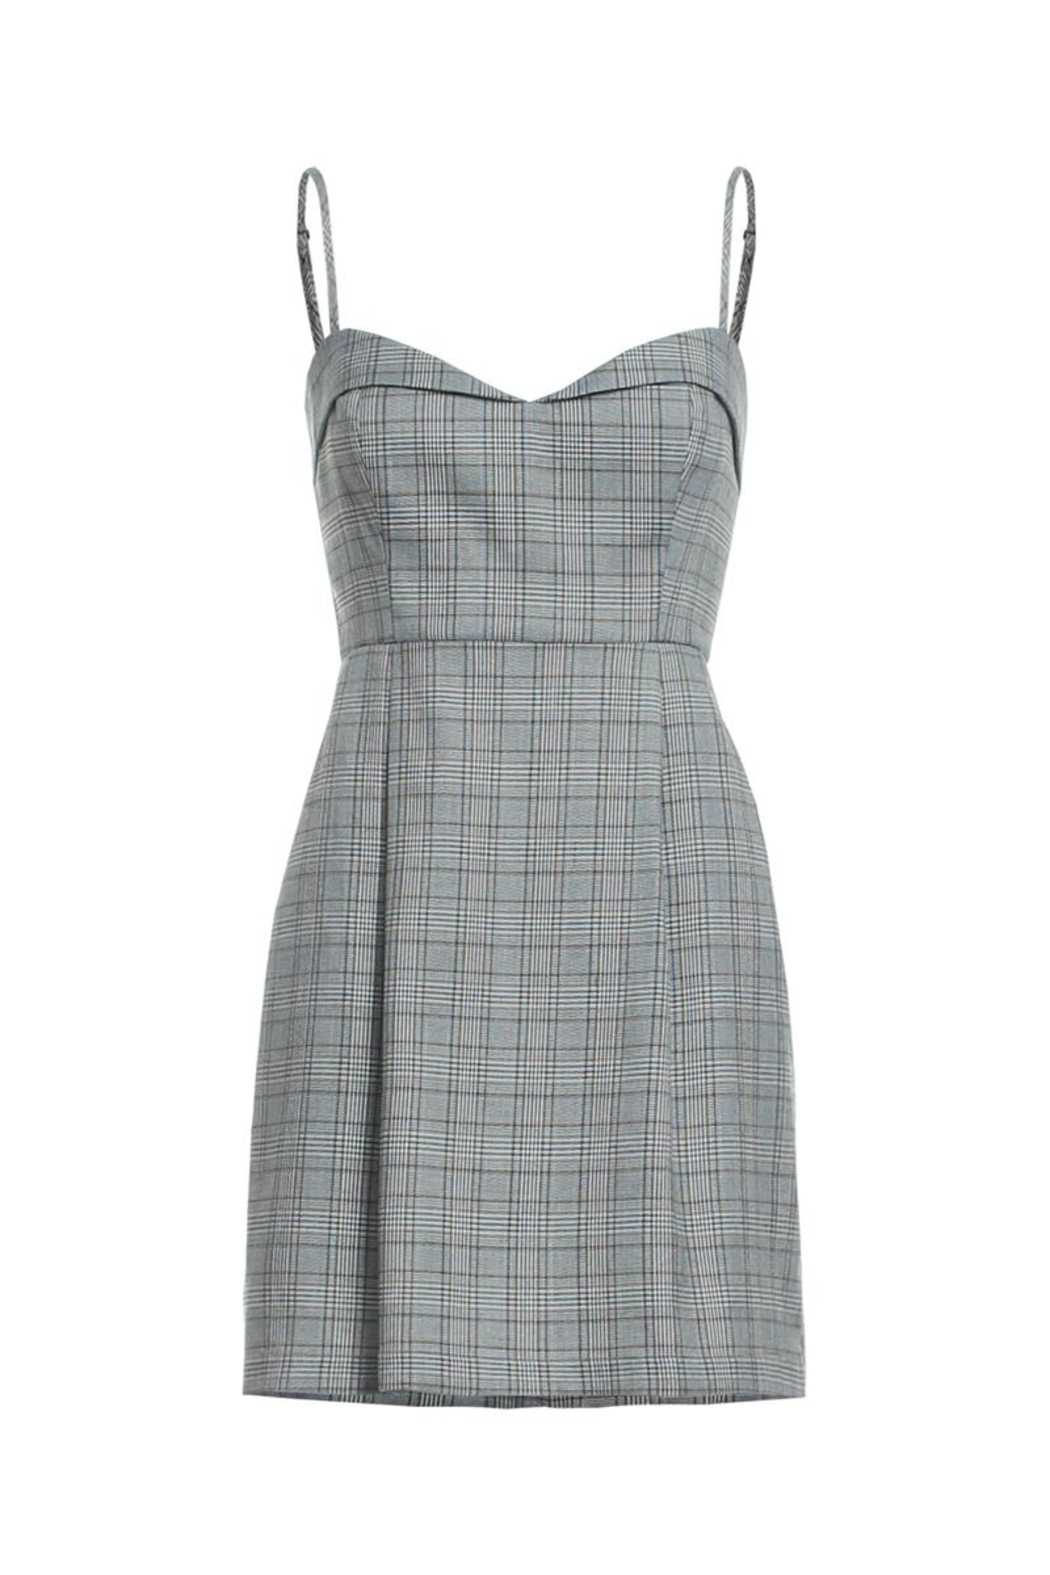 Renamed Clothing Plaid Spaghetti Strap Dress - Main Image